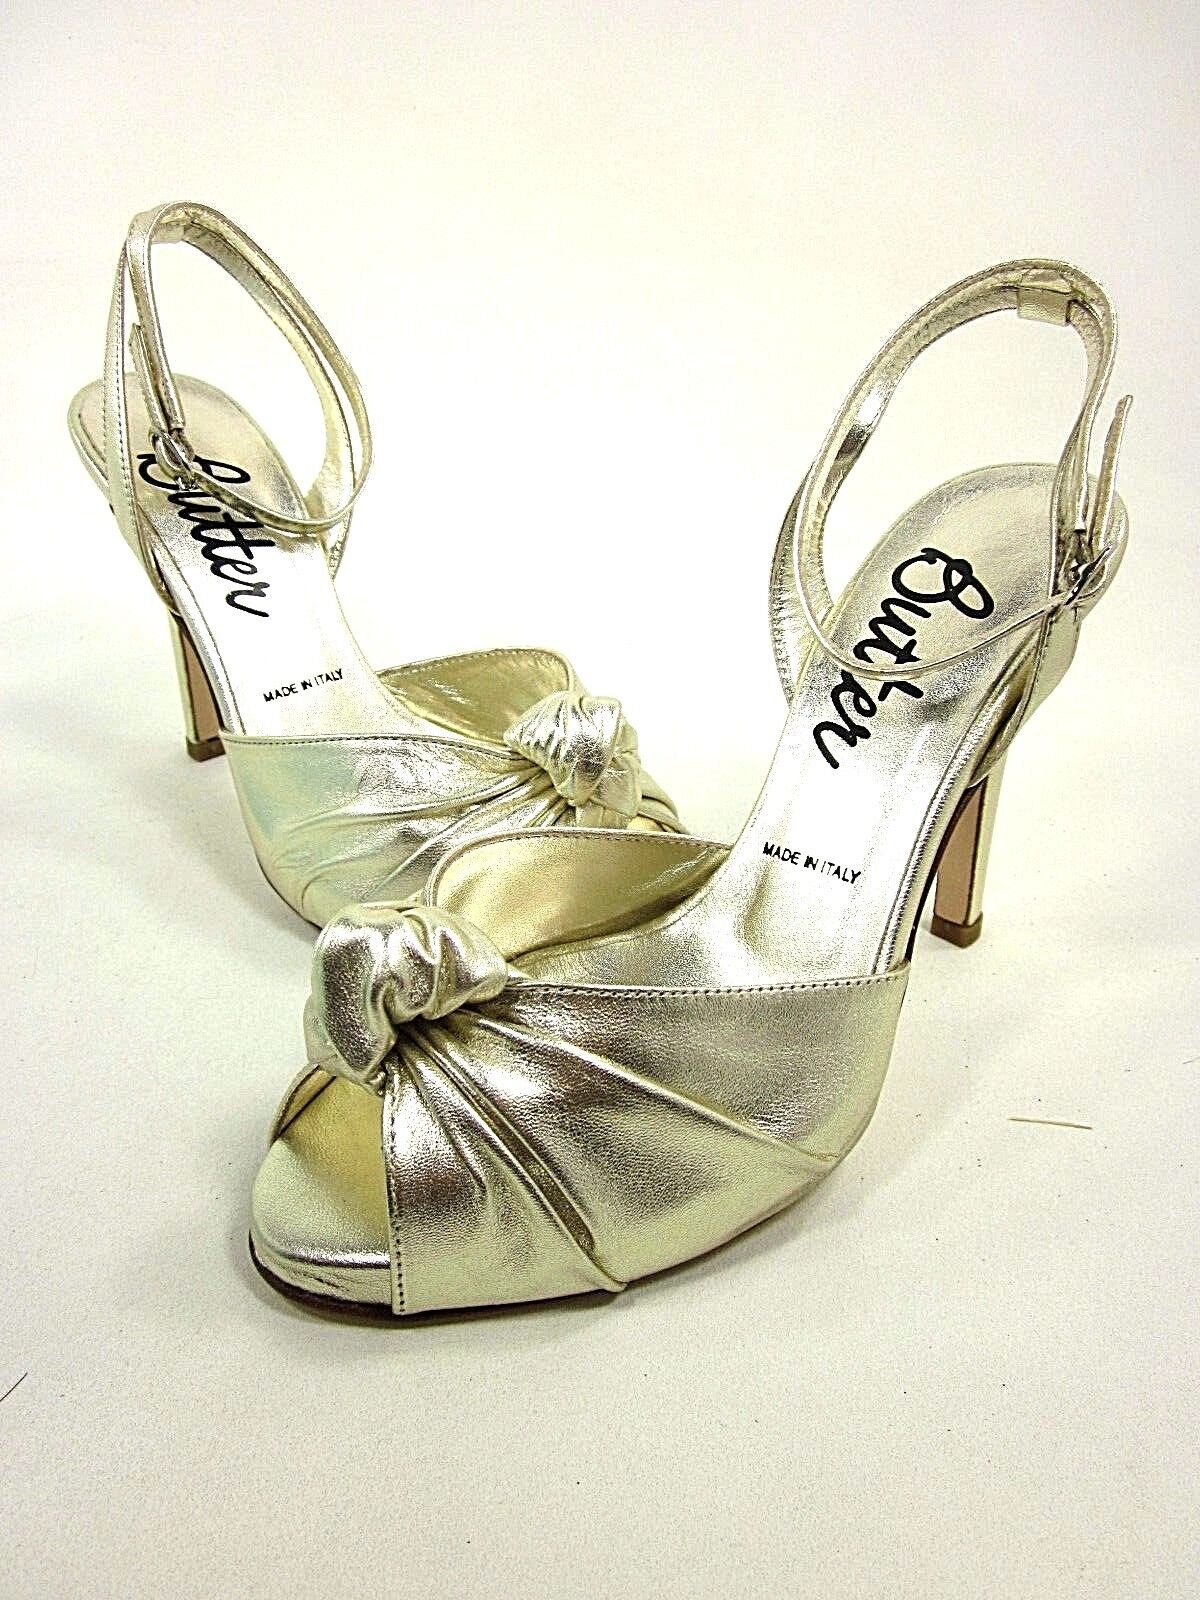 BUTTER, STANLEY ANKLE-STRAP SANDAL, femmes, or METALLIC, US 5M, NEW WITH BOX